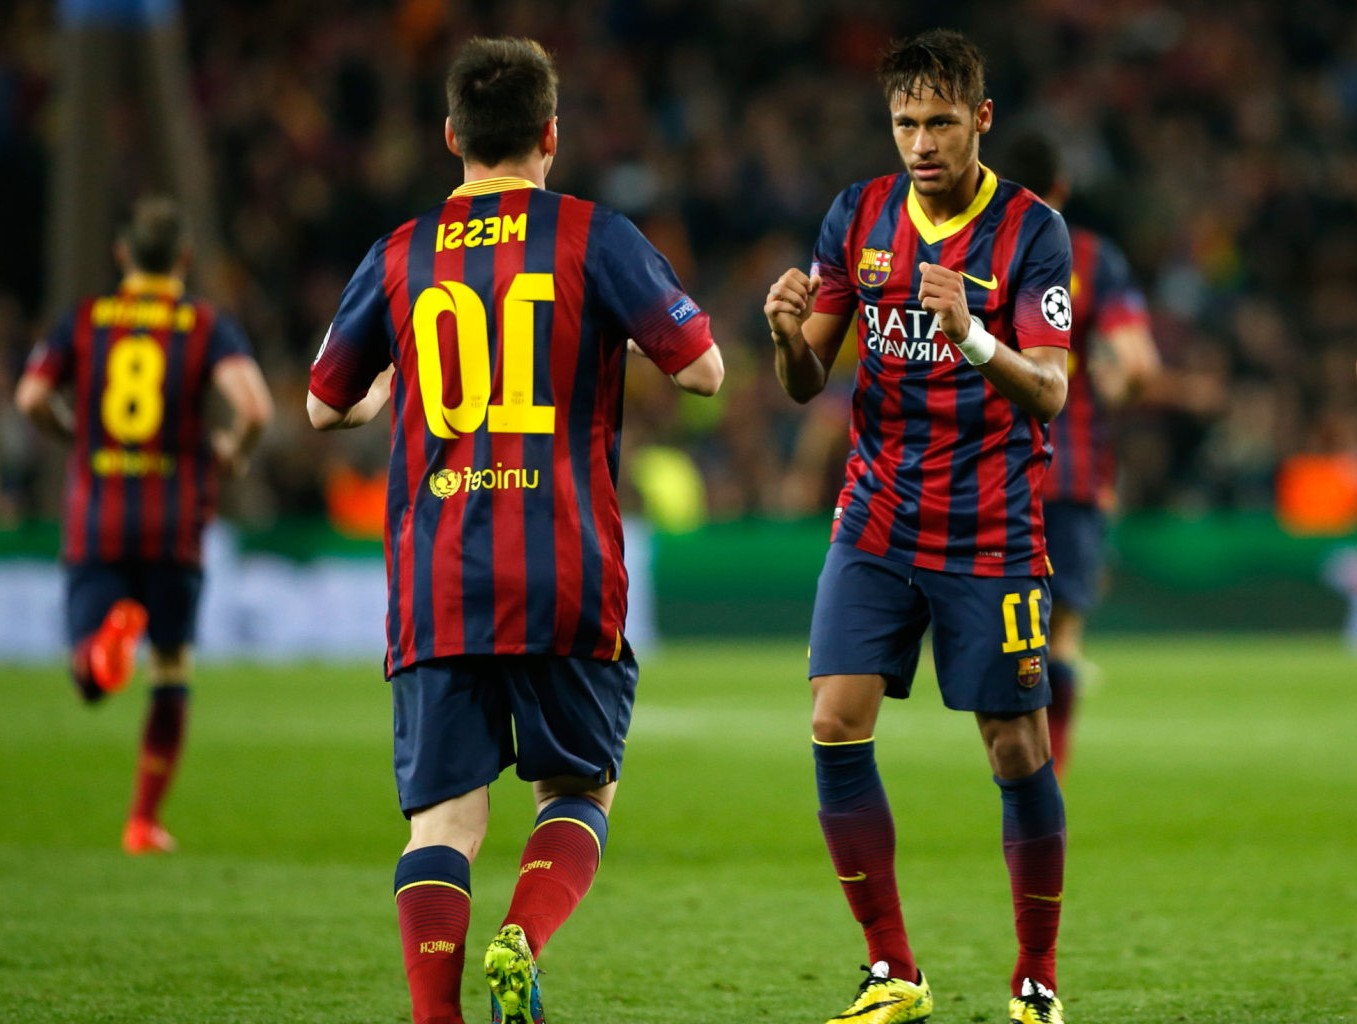 c8e5729f017 Barcelona Neymar Messi 16130 Wallpaper Wallpaper hd 1357x1024